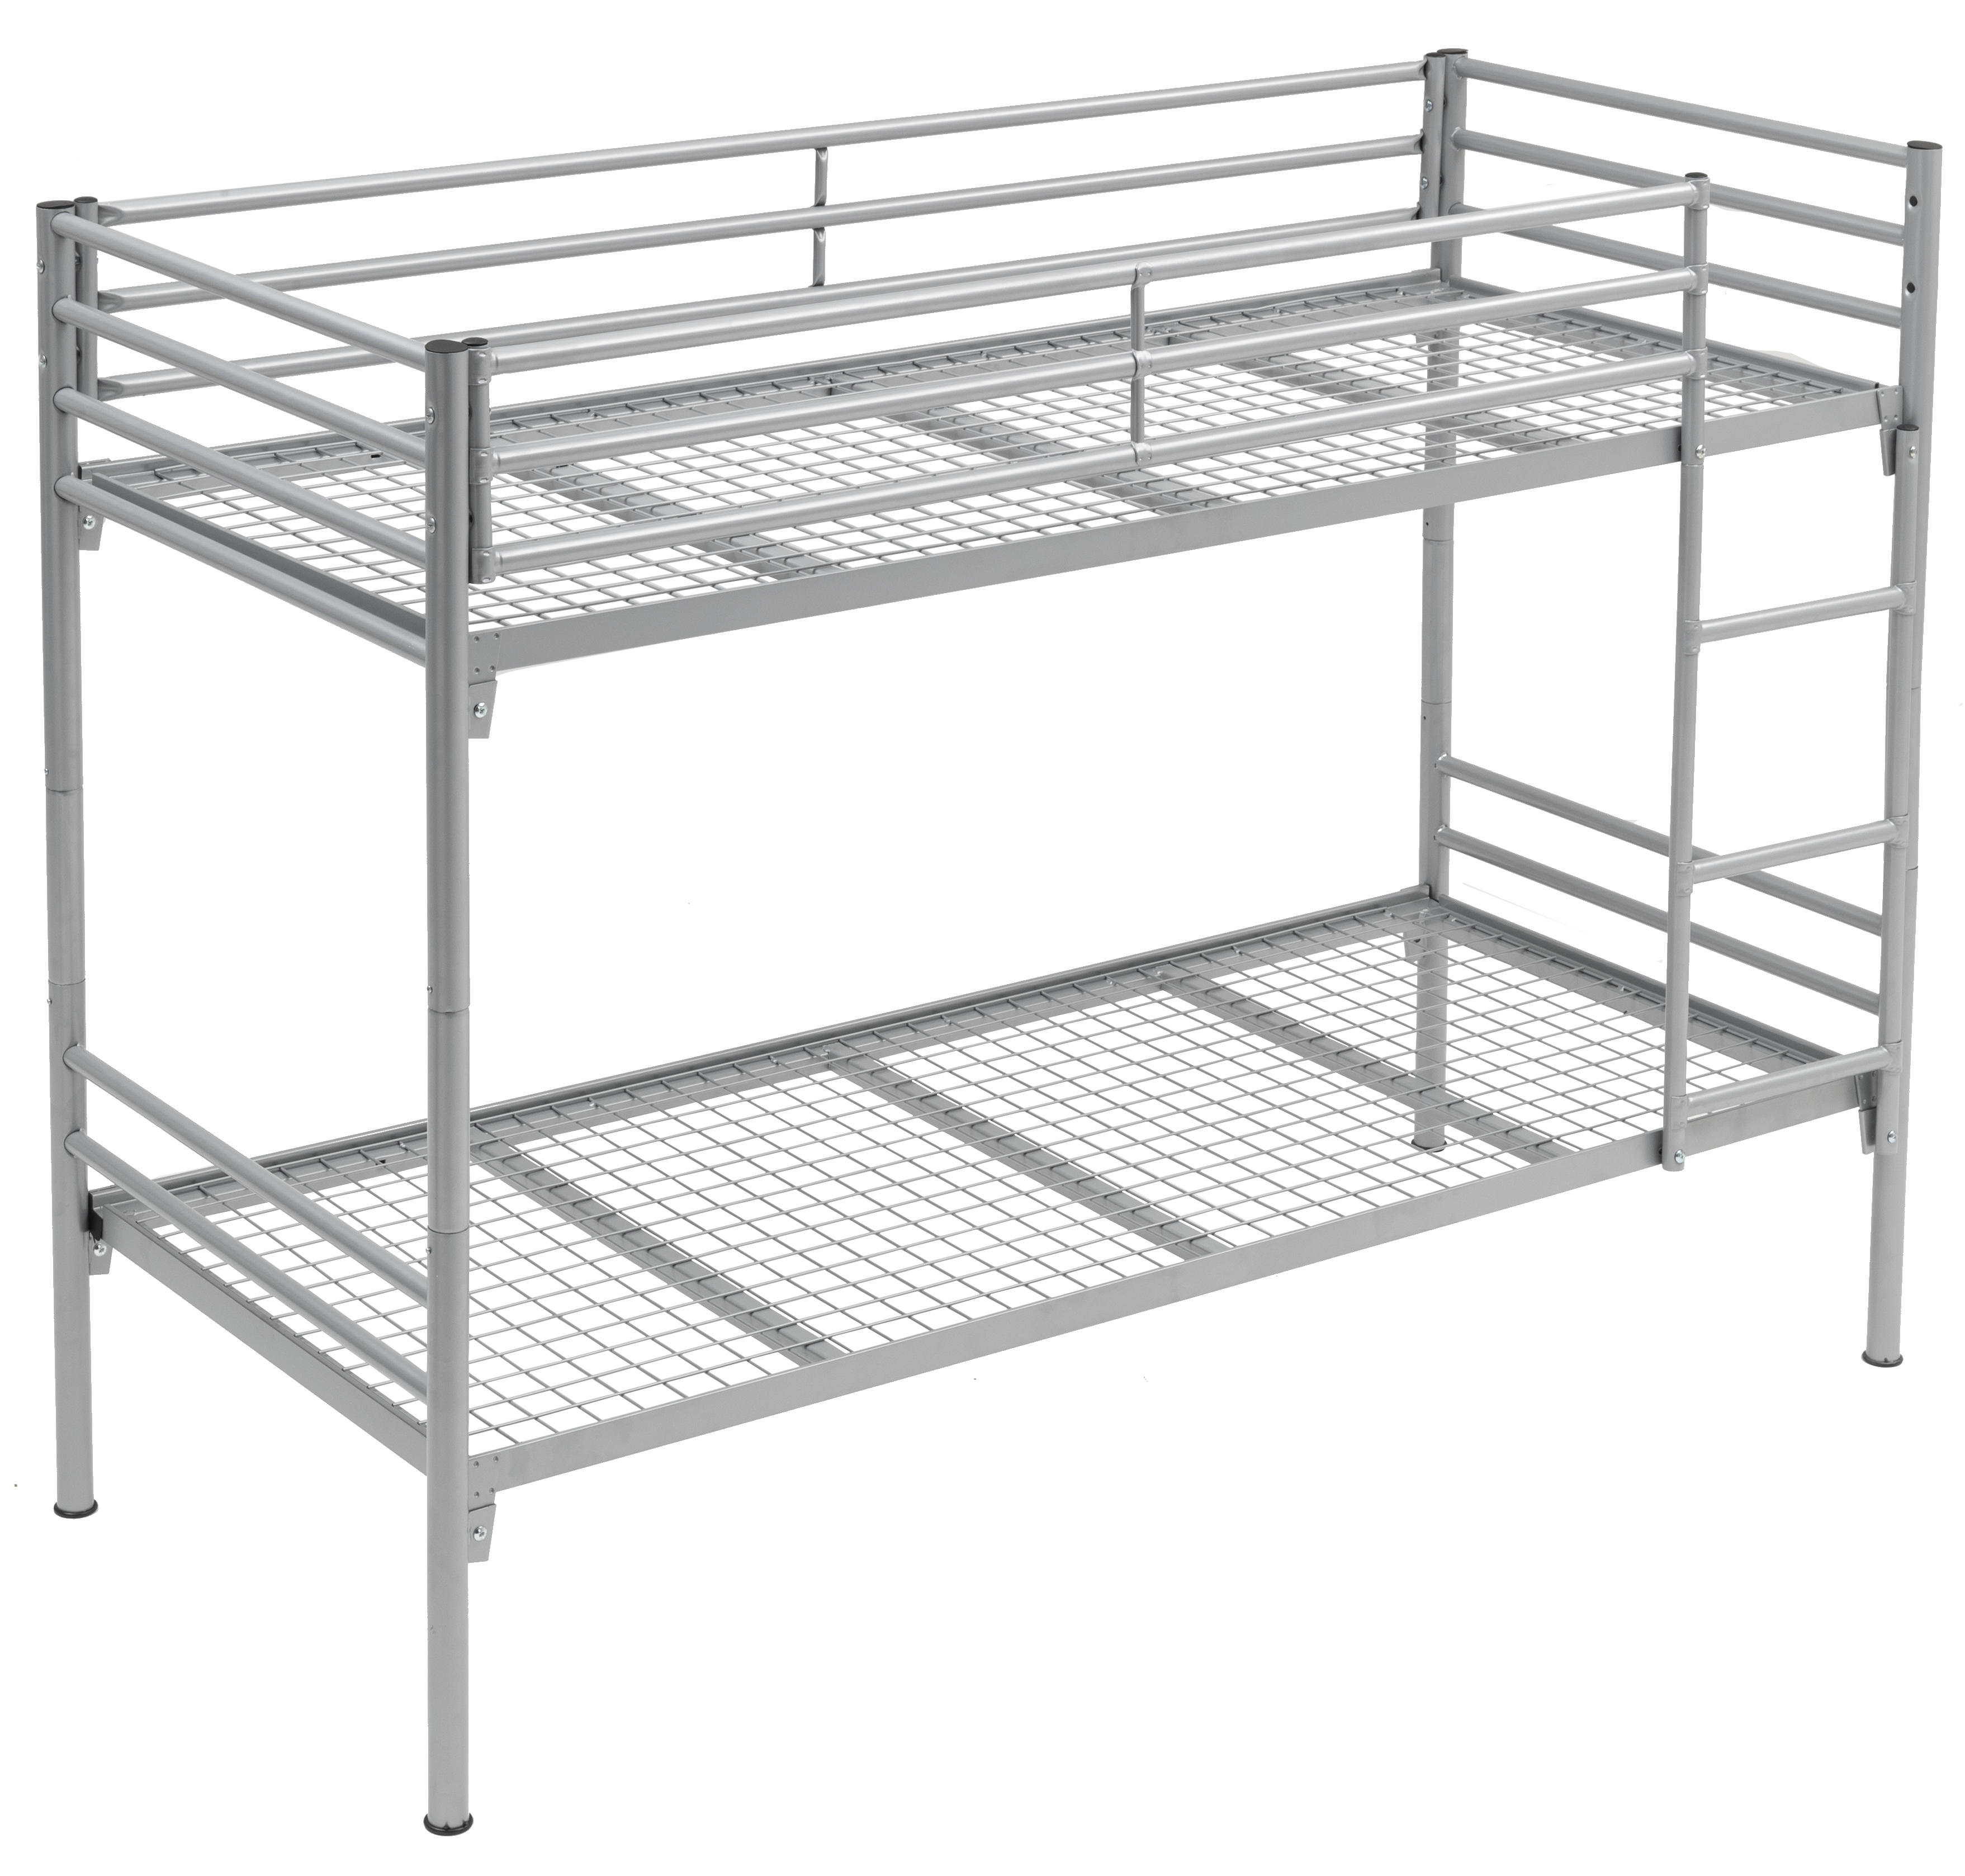 Electro-welded bunk bed